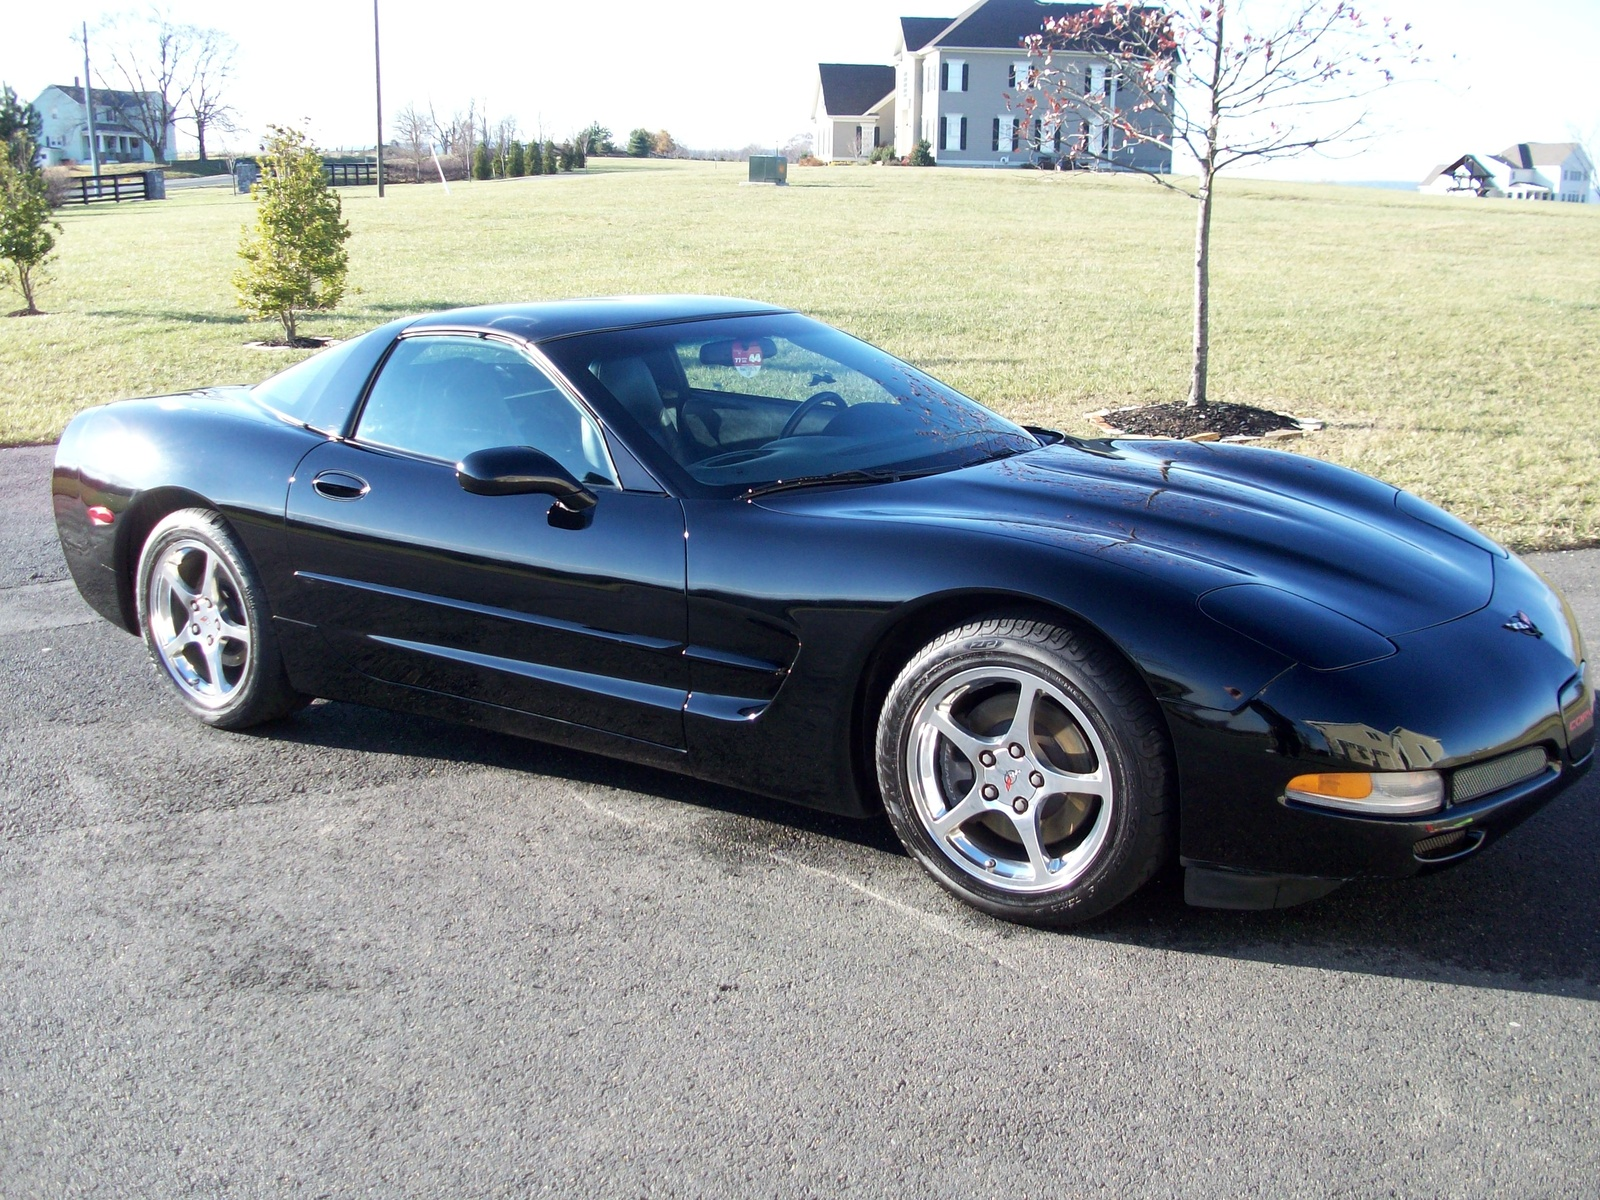 2002 Chevrolet Corvette Coupe picture, exterior